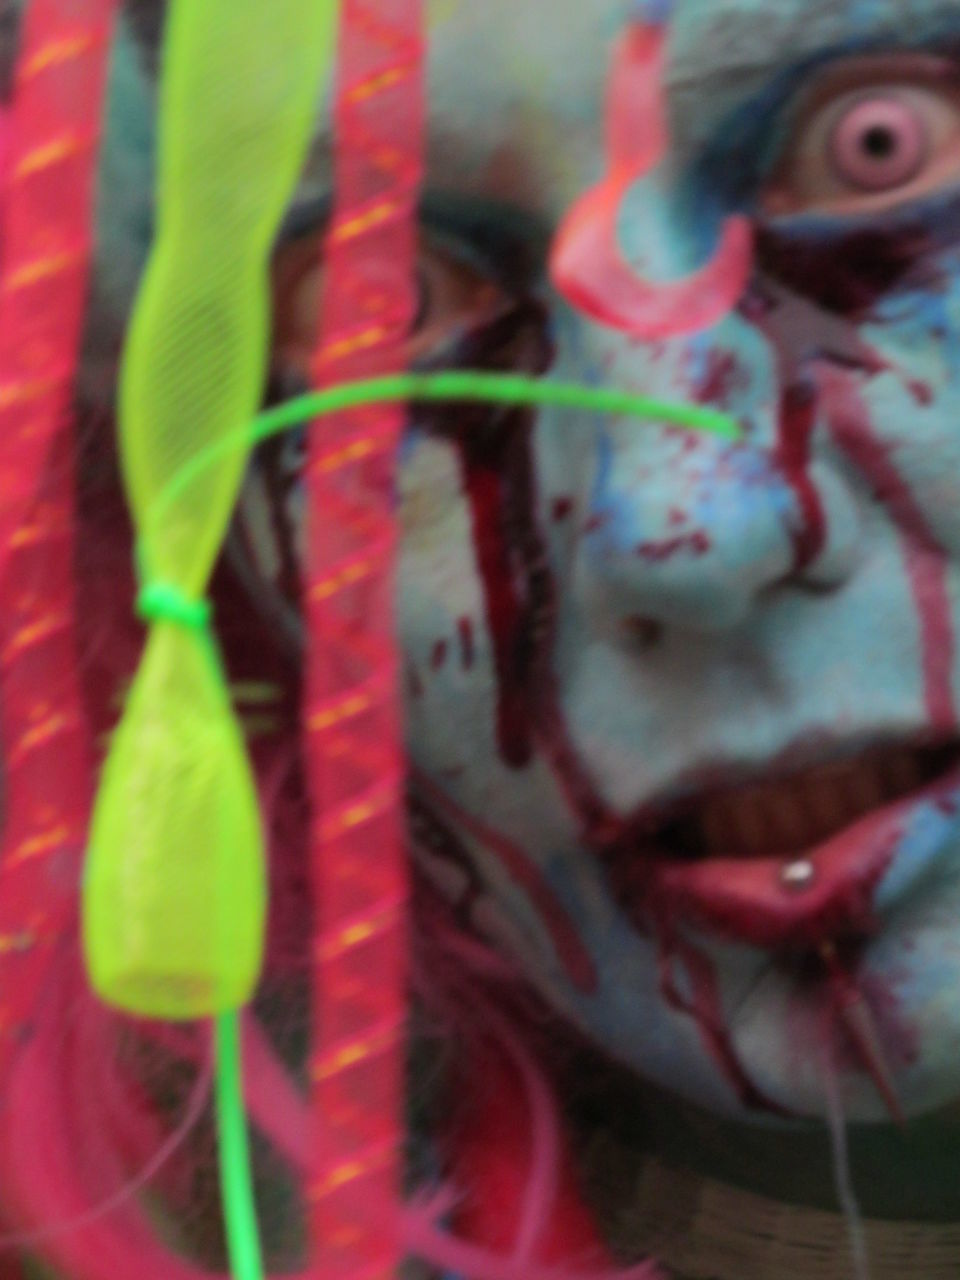 multi colored, close-up, one person, celebration, human face, childhood, day, indoors, clown, people